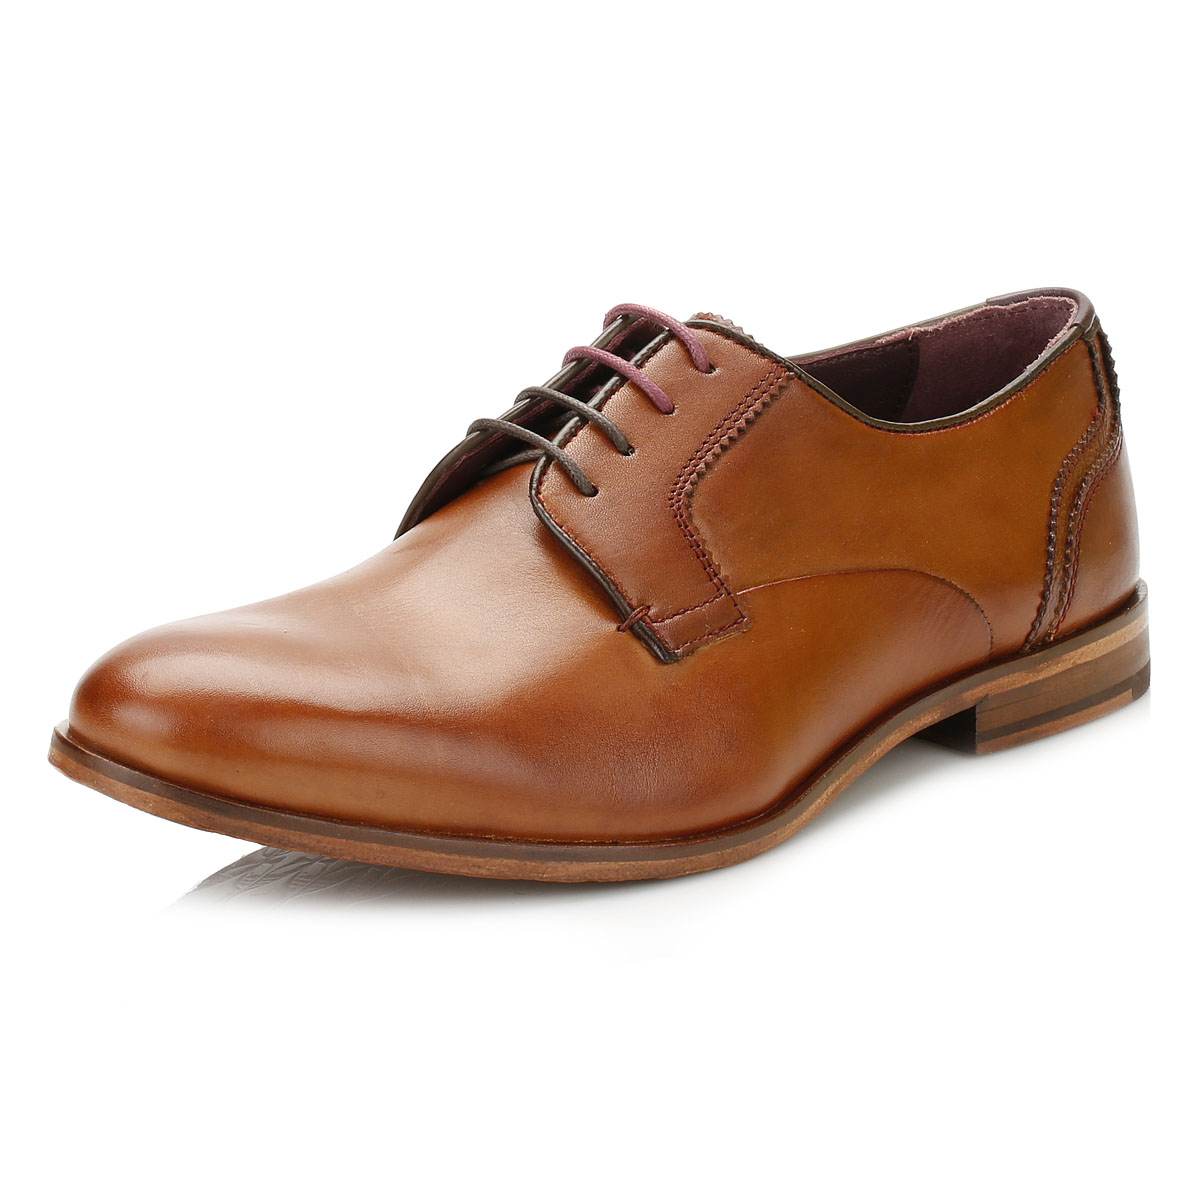 Mens Tan Leather Shoes